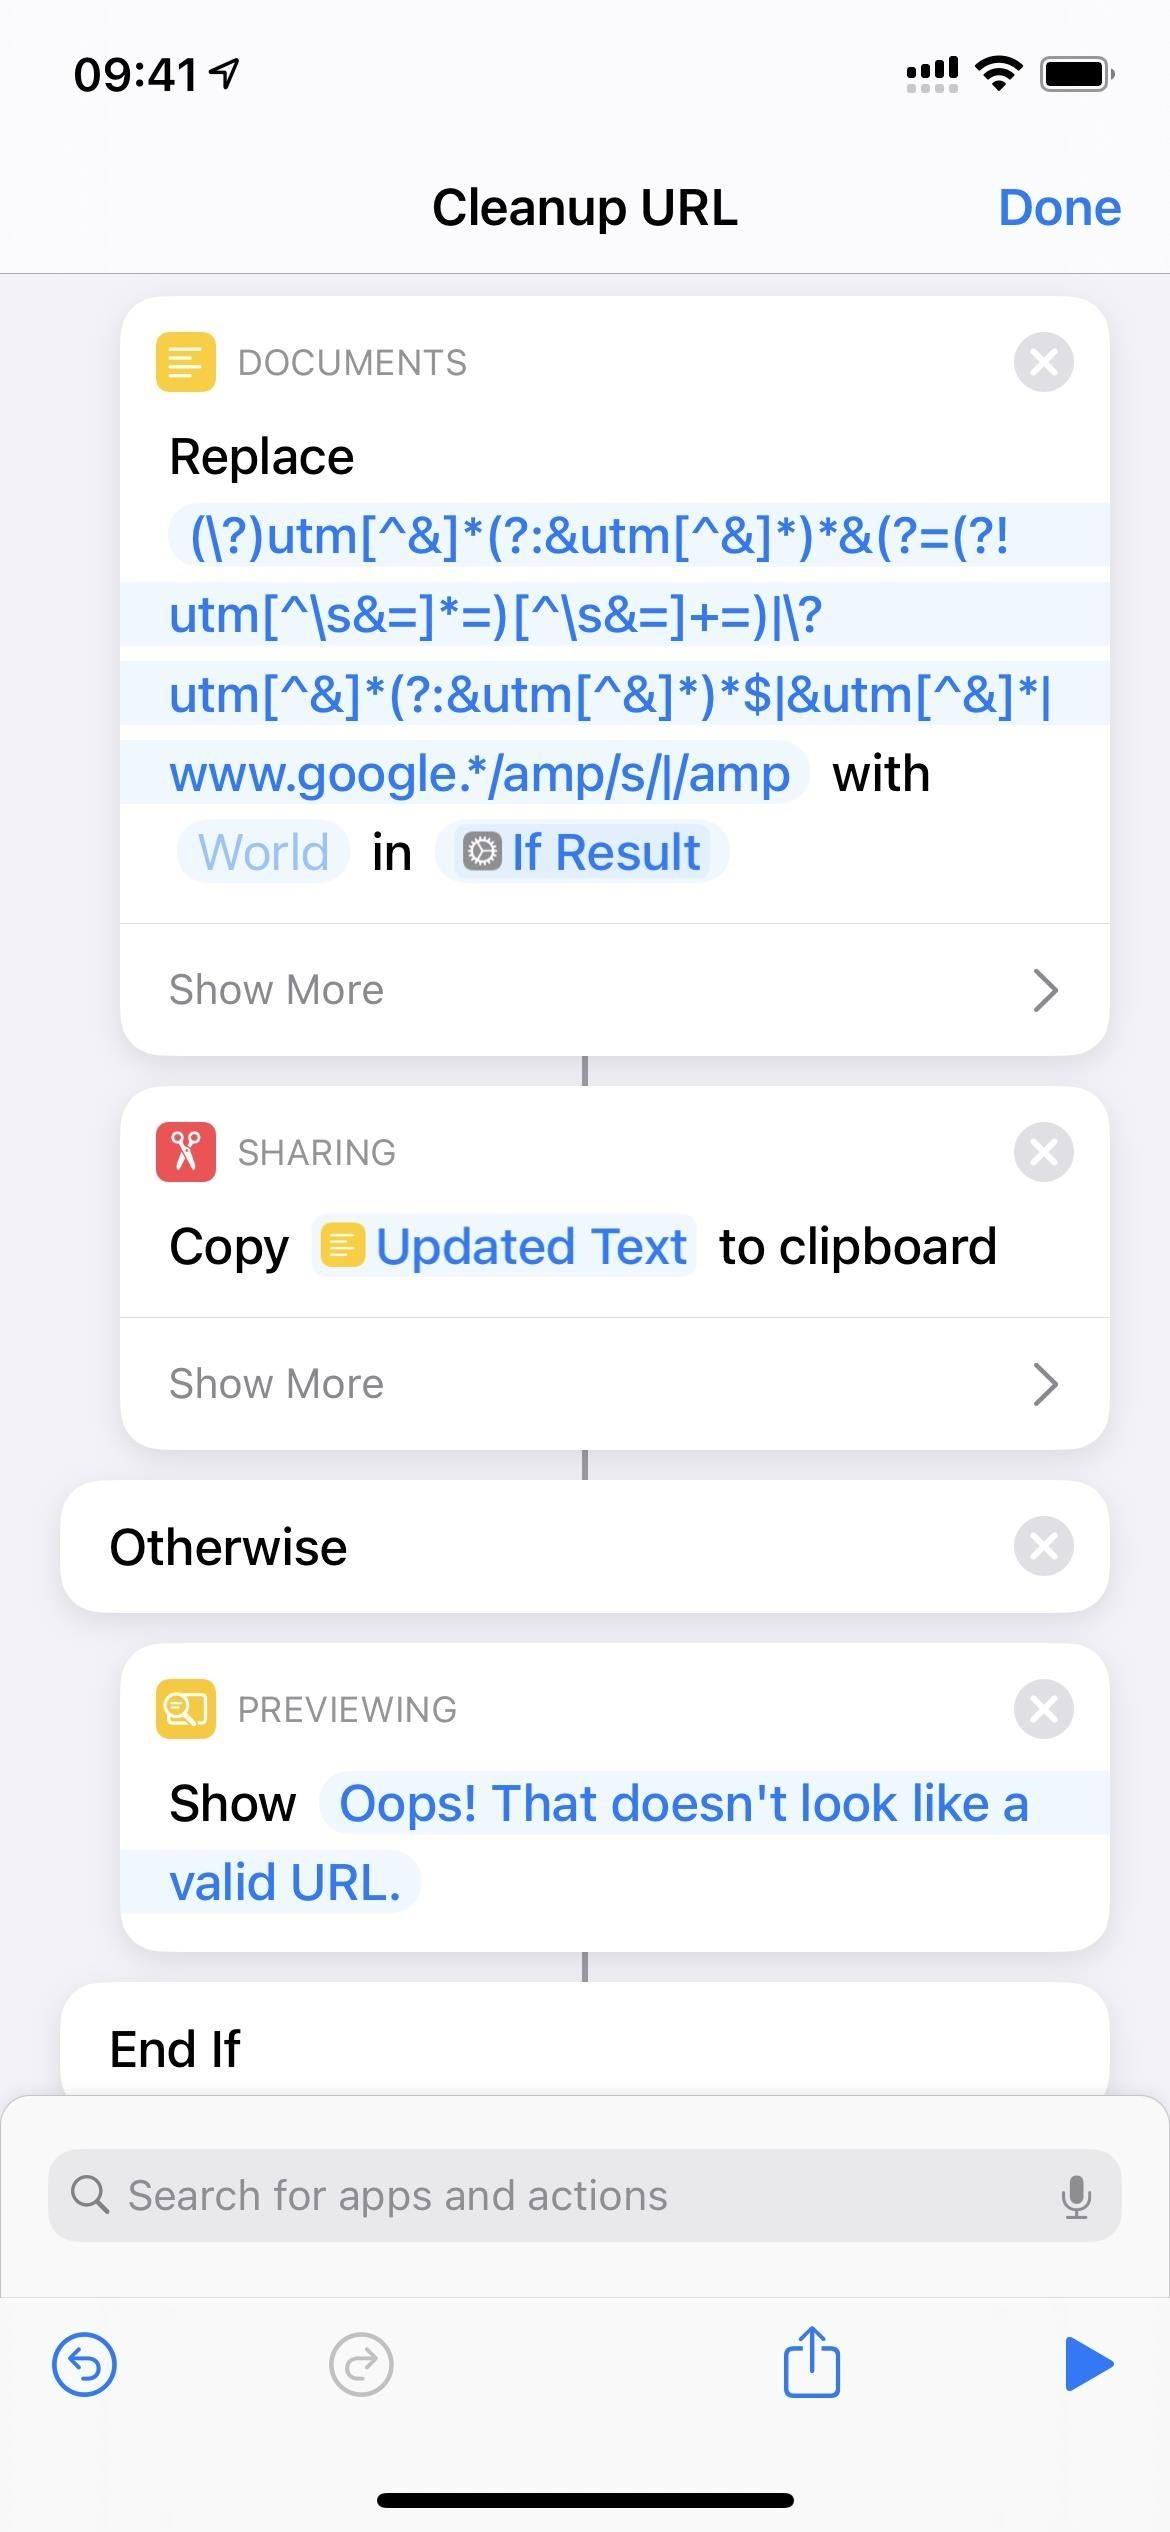 How to Auto-Remove Annoying Tracking Codes in URLs You Share from Your iPhone to Get Cleaner Links